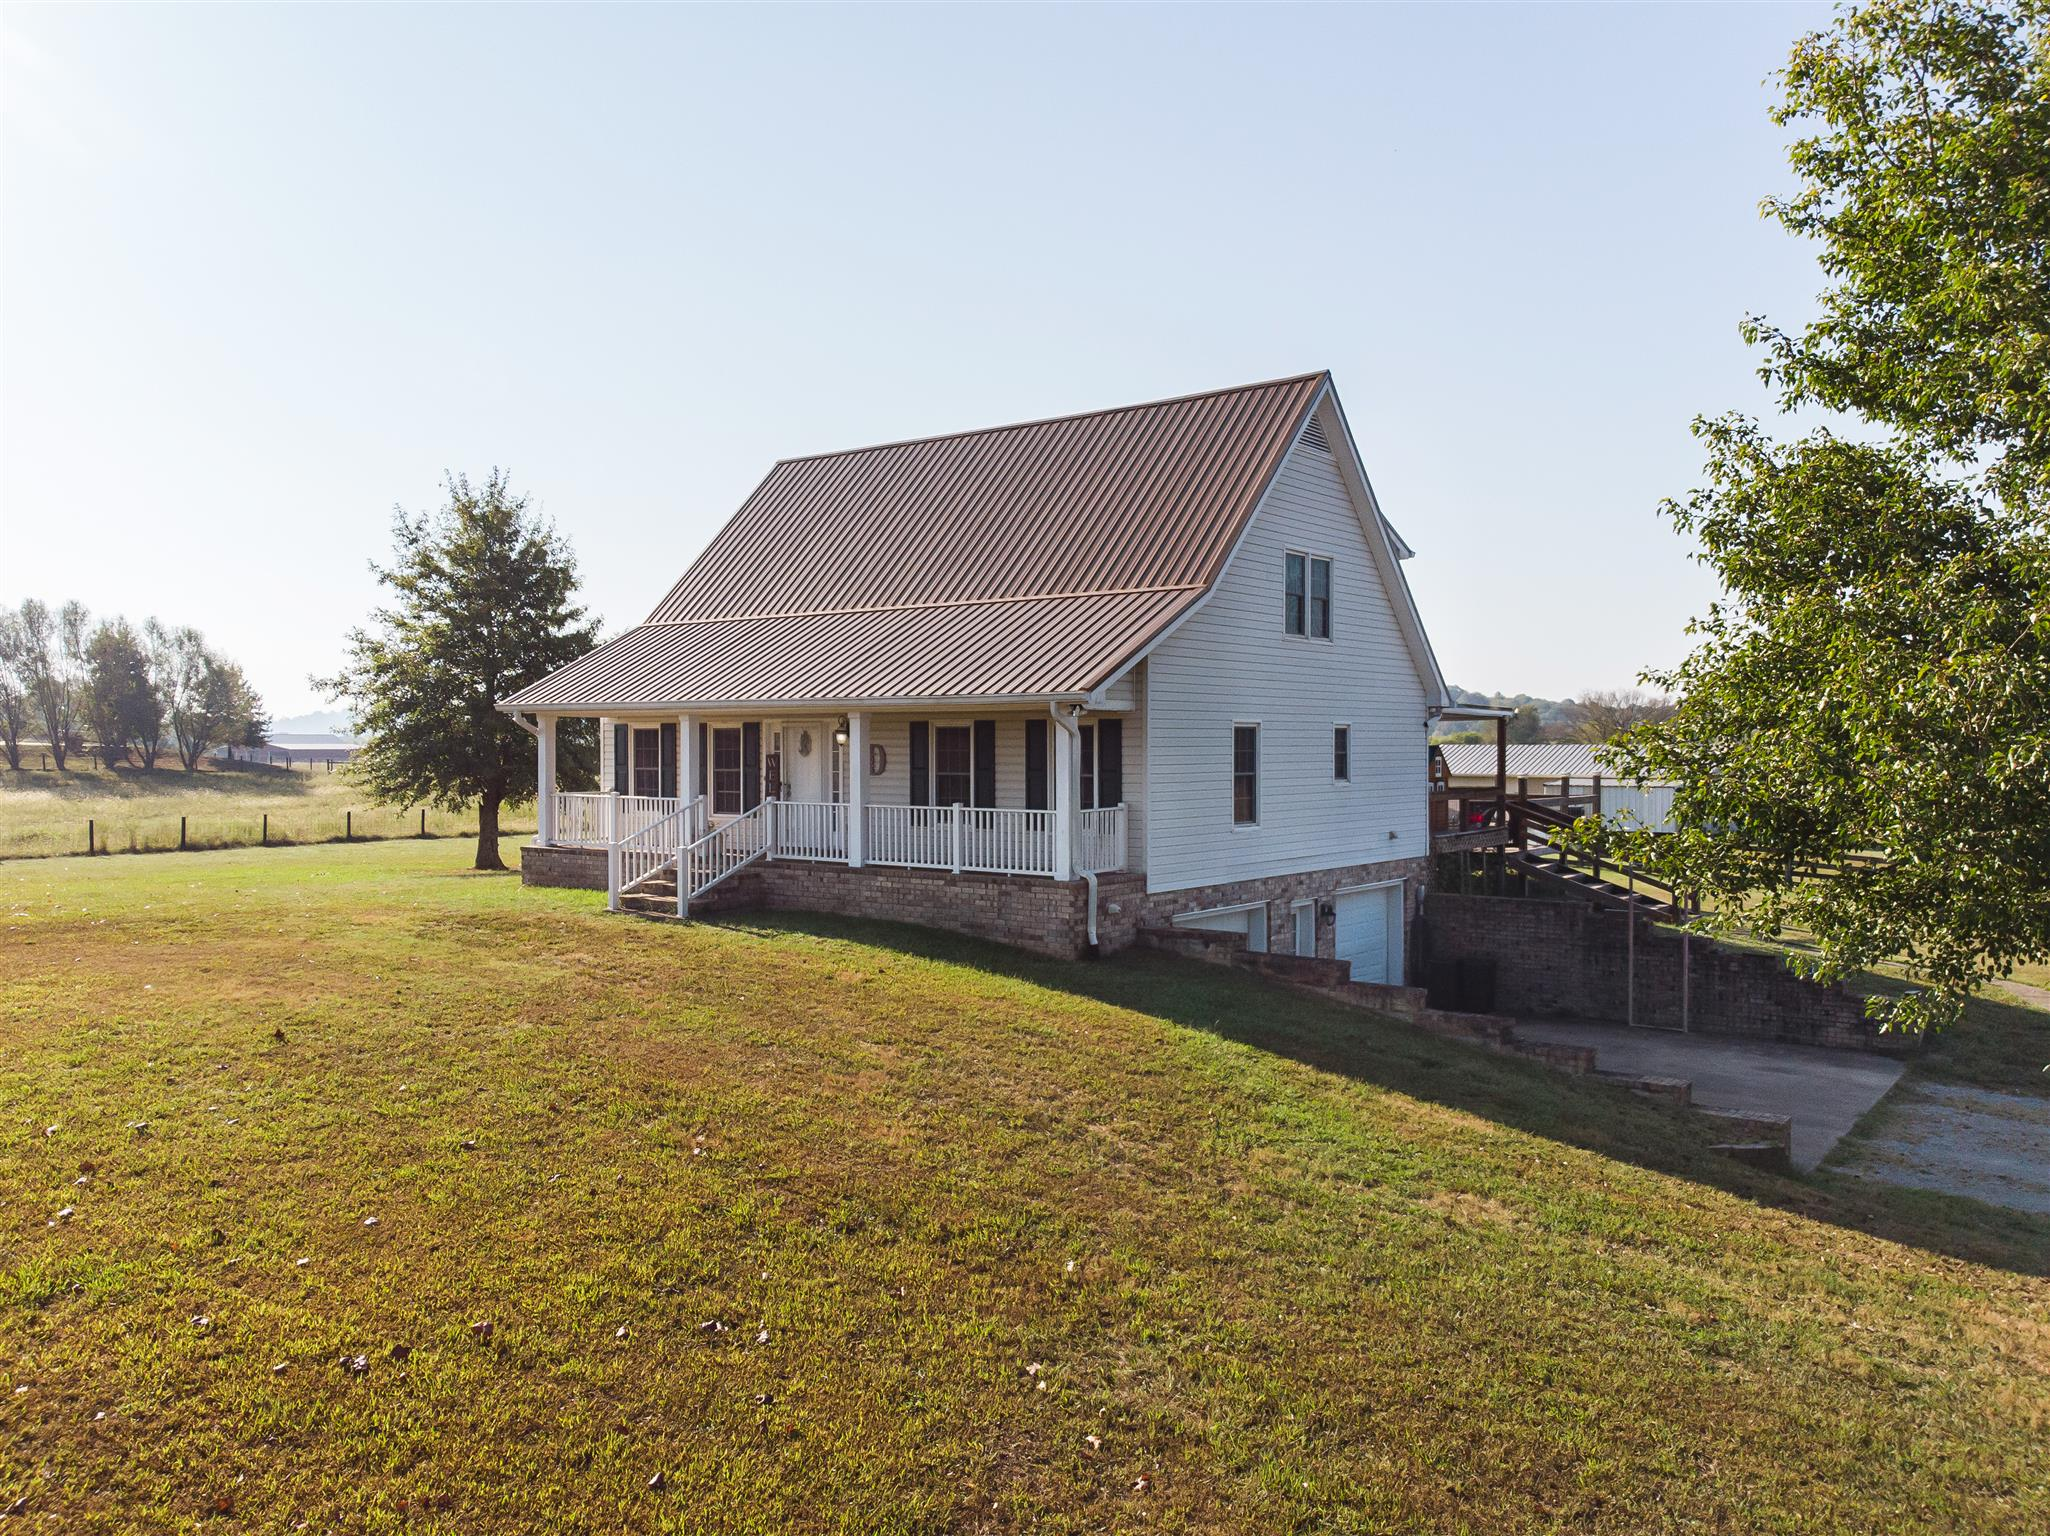 7055 Buford Station Rd, Lynnville, TN 38472 - Lynnville, TN real estate listing